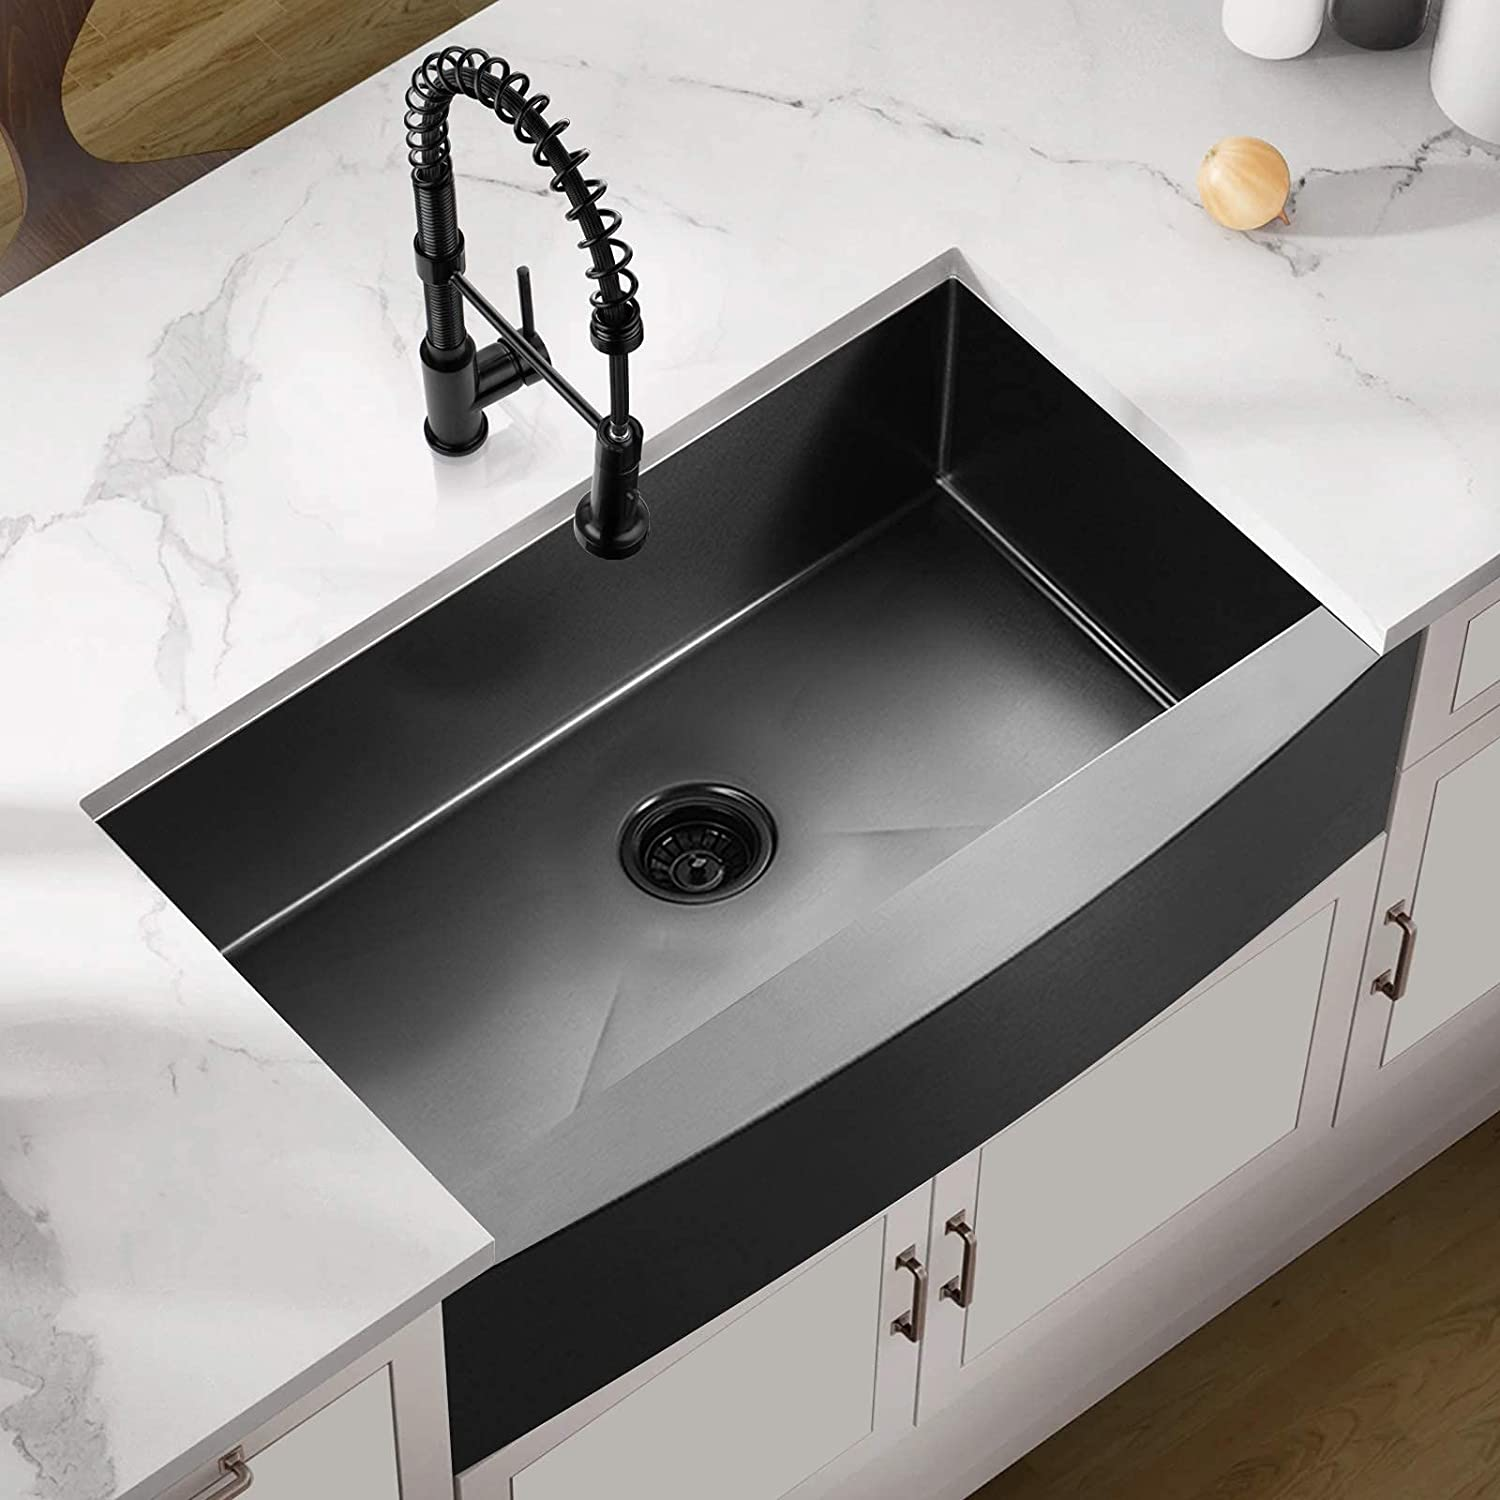 36 x 21 10 inch Black Apron Beauty products G Free shipping on posting reviews Front Farmhouse Sink Kitchen 16